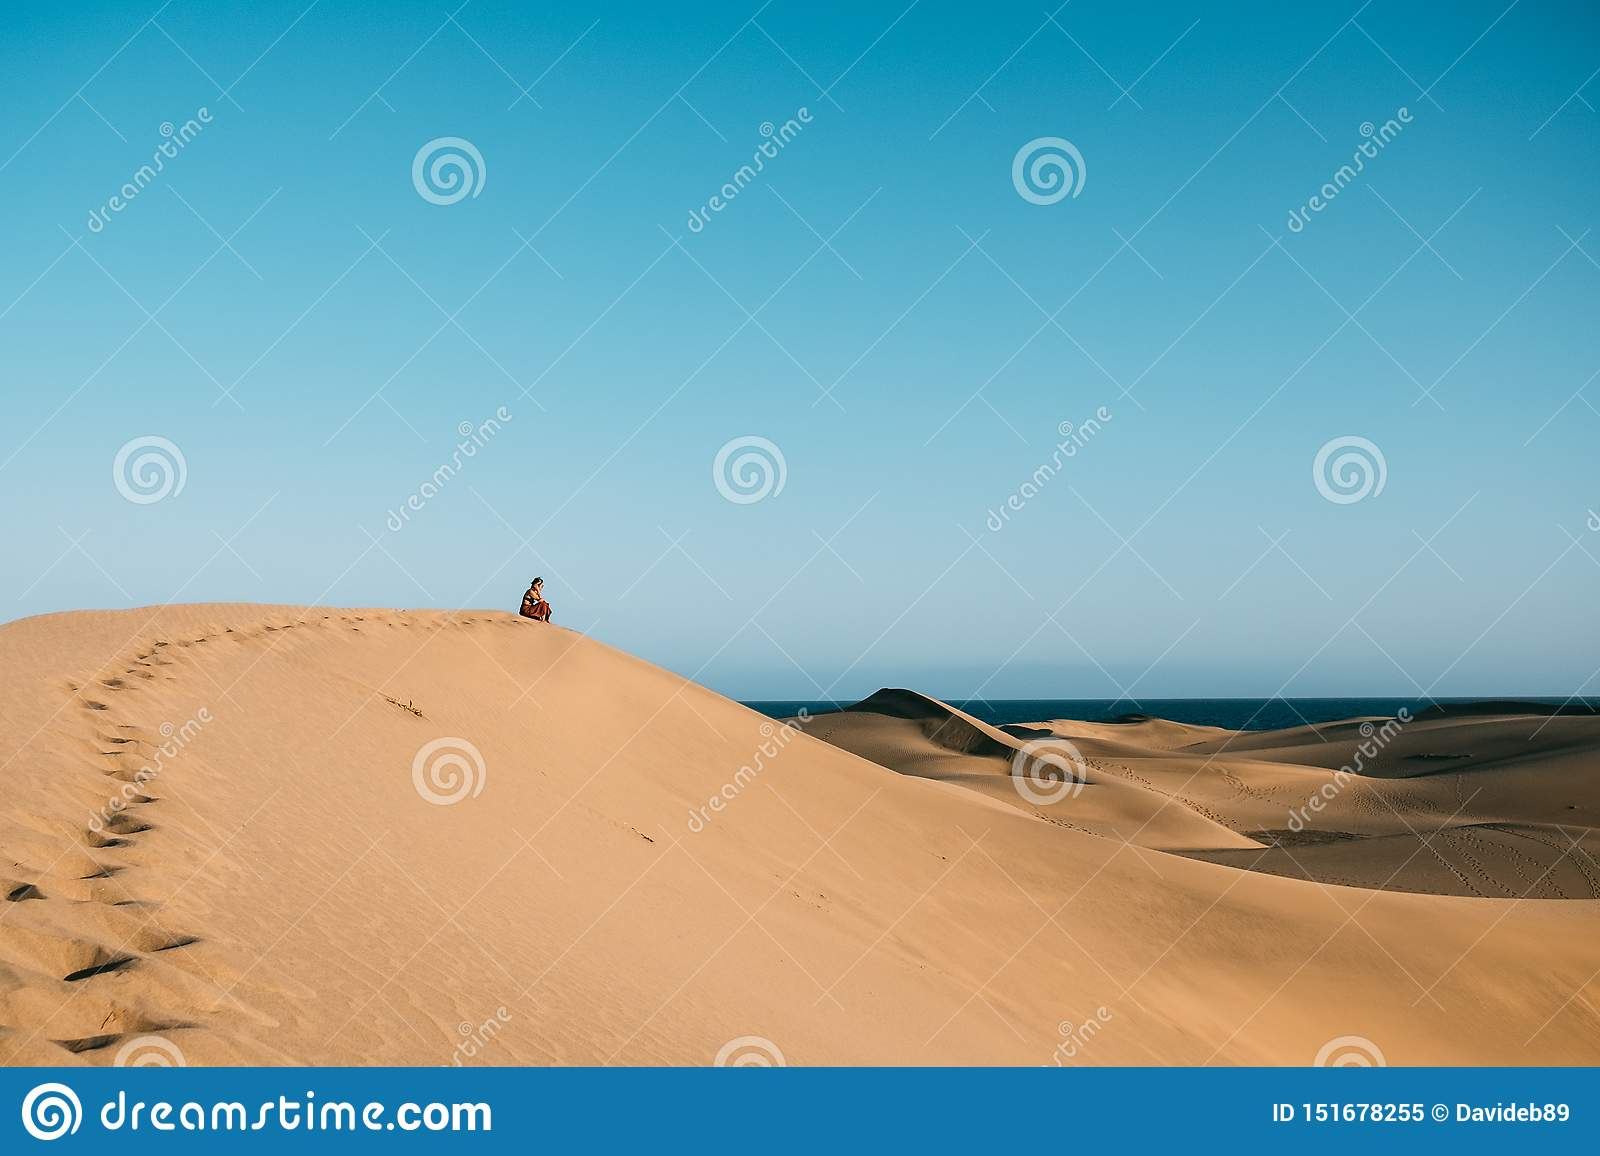 Young woman with red dress sit alone in the desert thinking and reflecting on top of dune as a metaphor of loneliness and